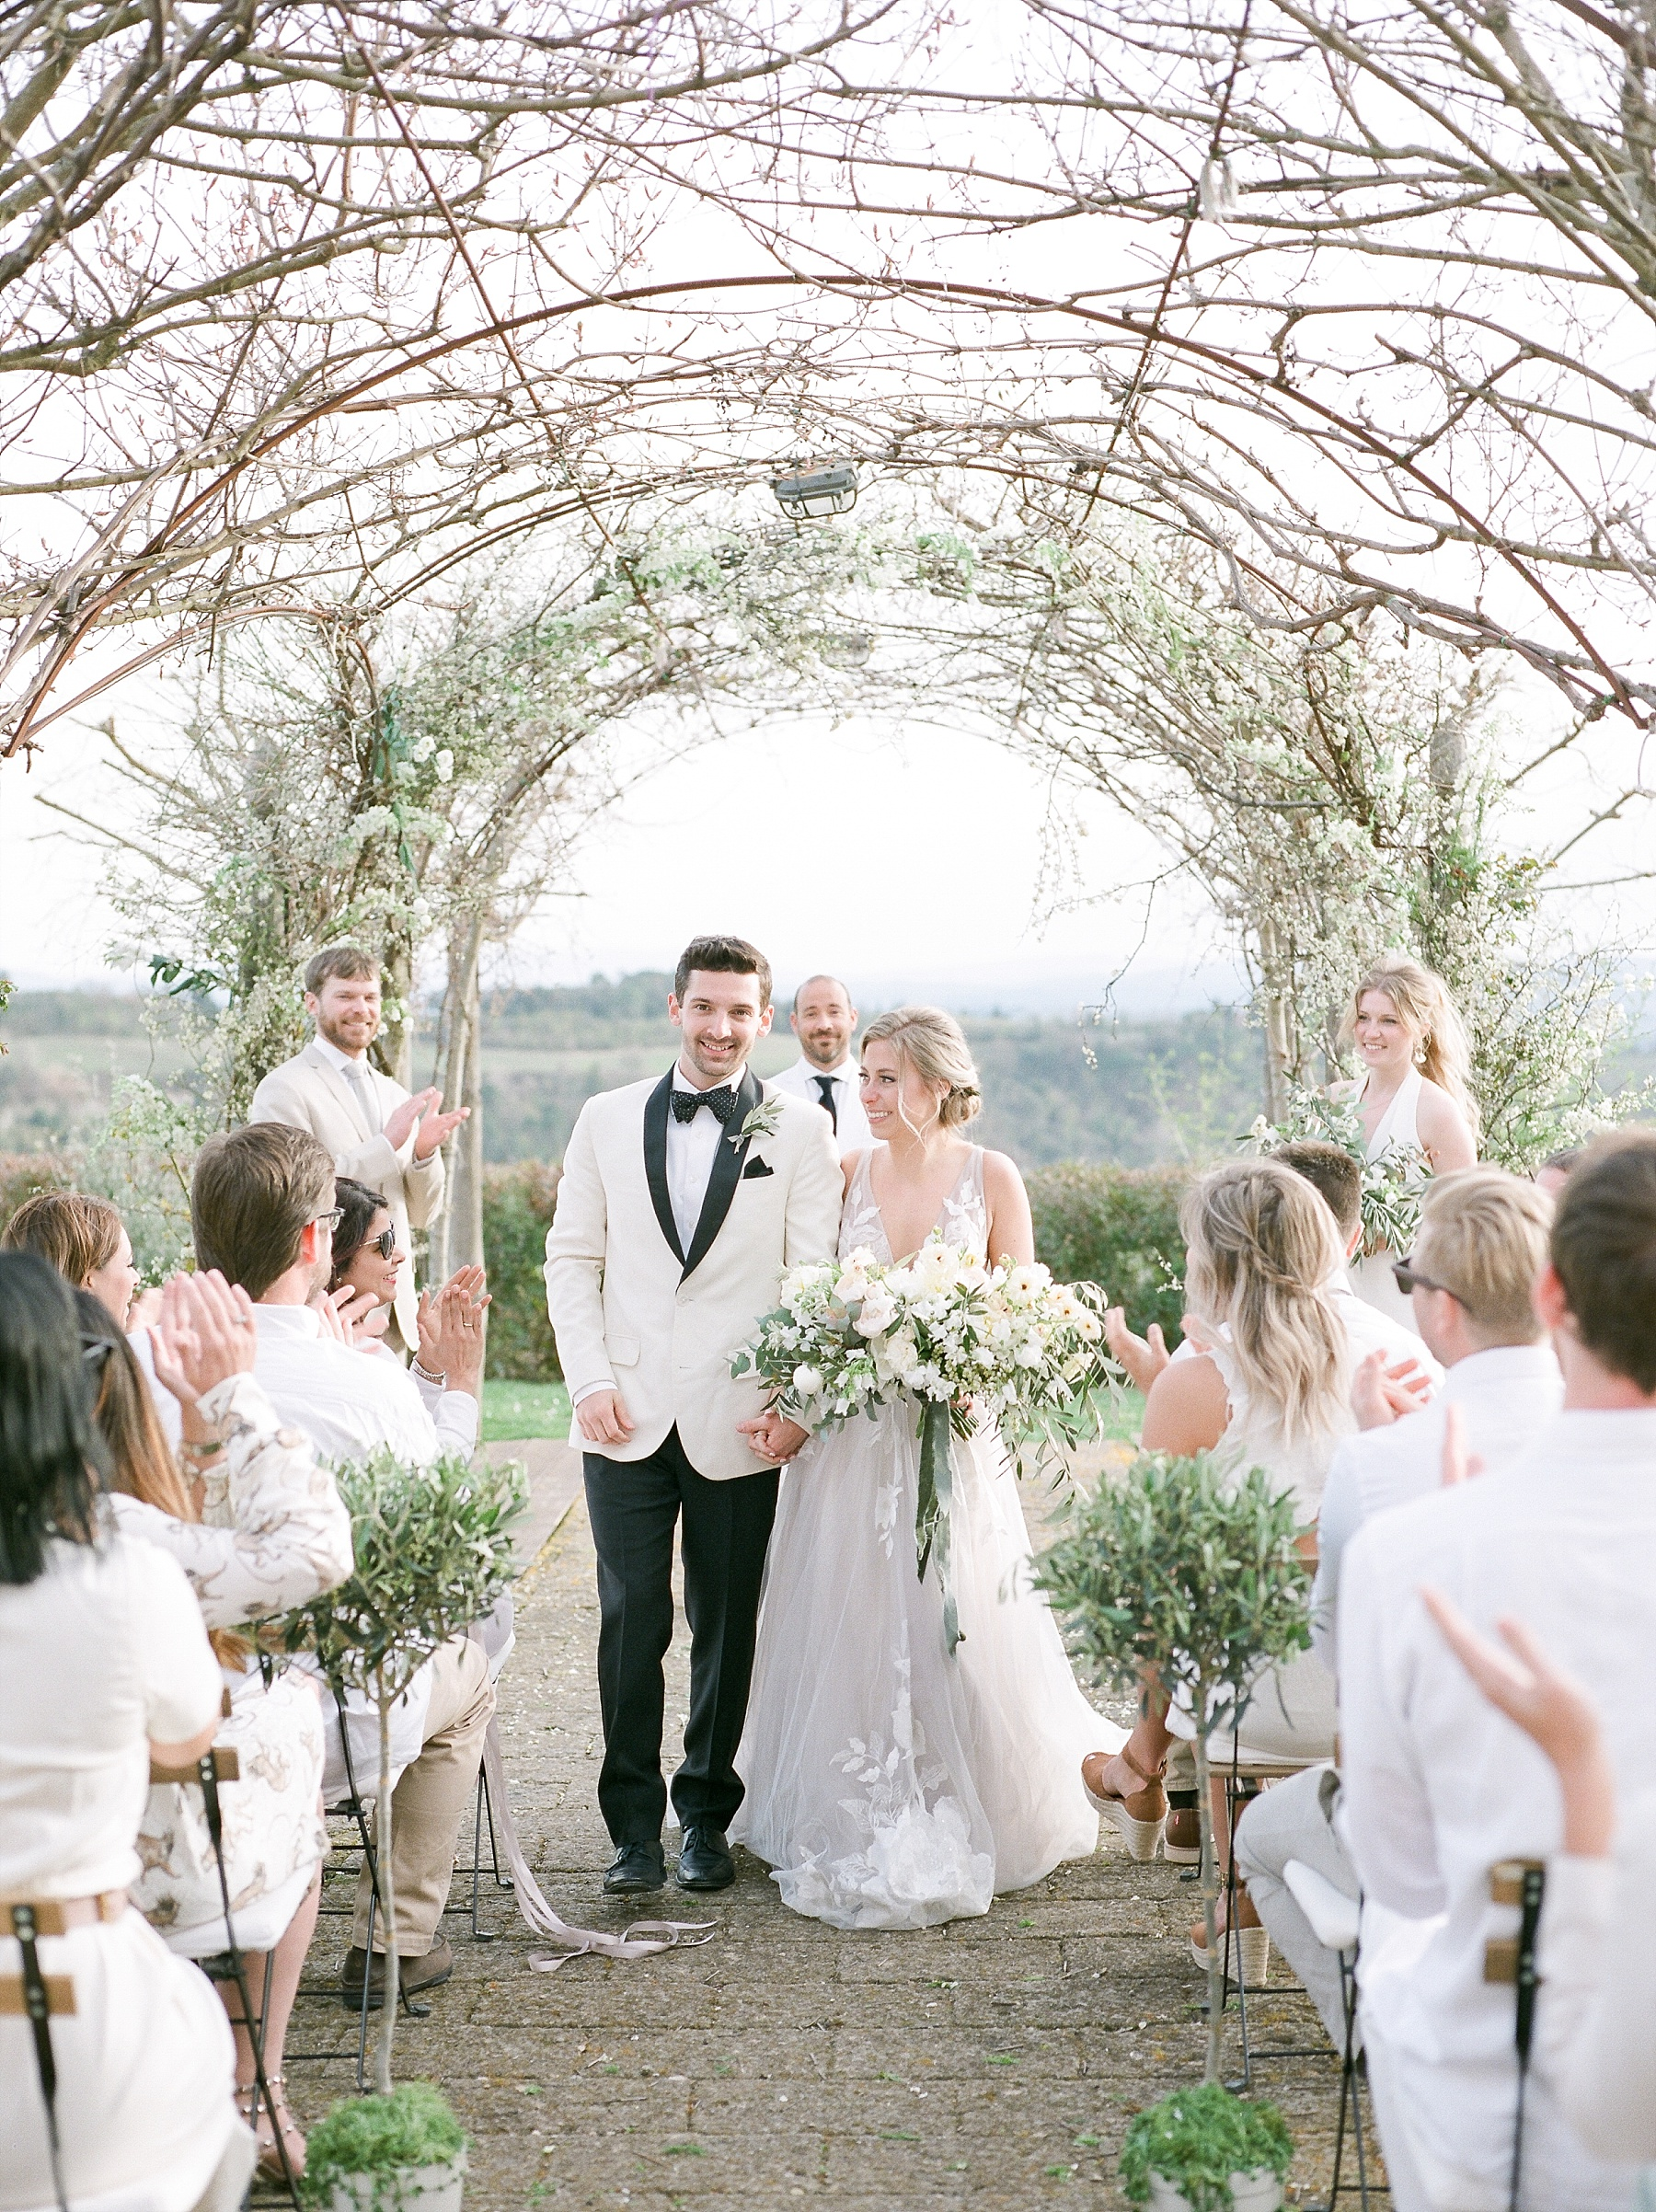 All White Destination Wedding in the Hills of Tuscany Italy at Estate Borgo Petrognano by Kelsi Kliethermes Photography_0050.jpg